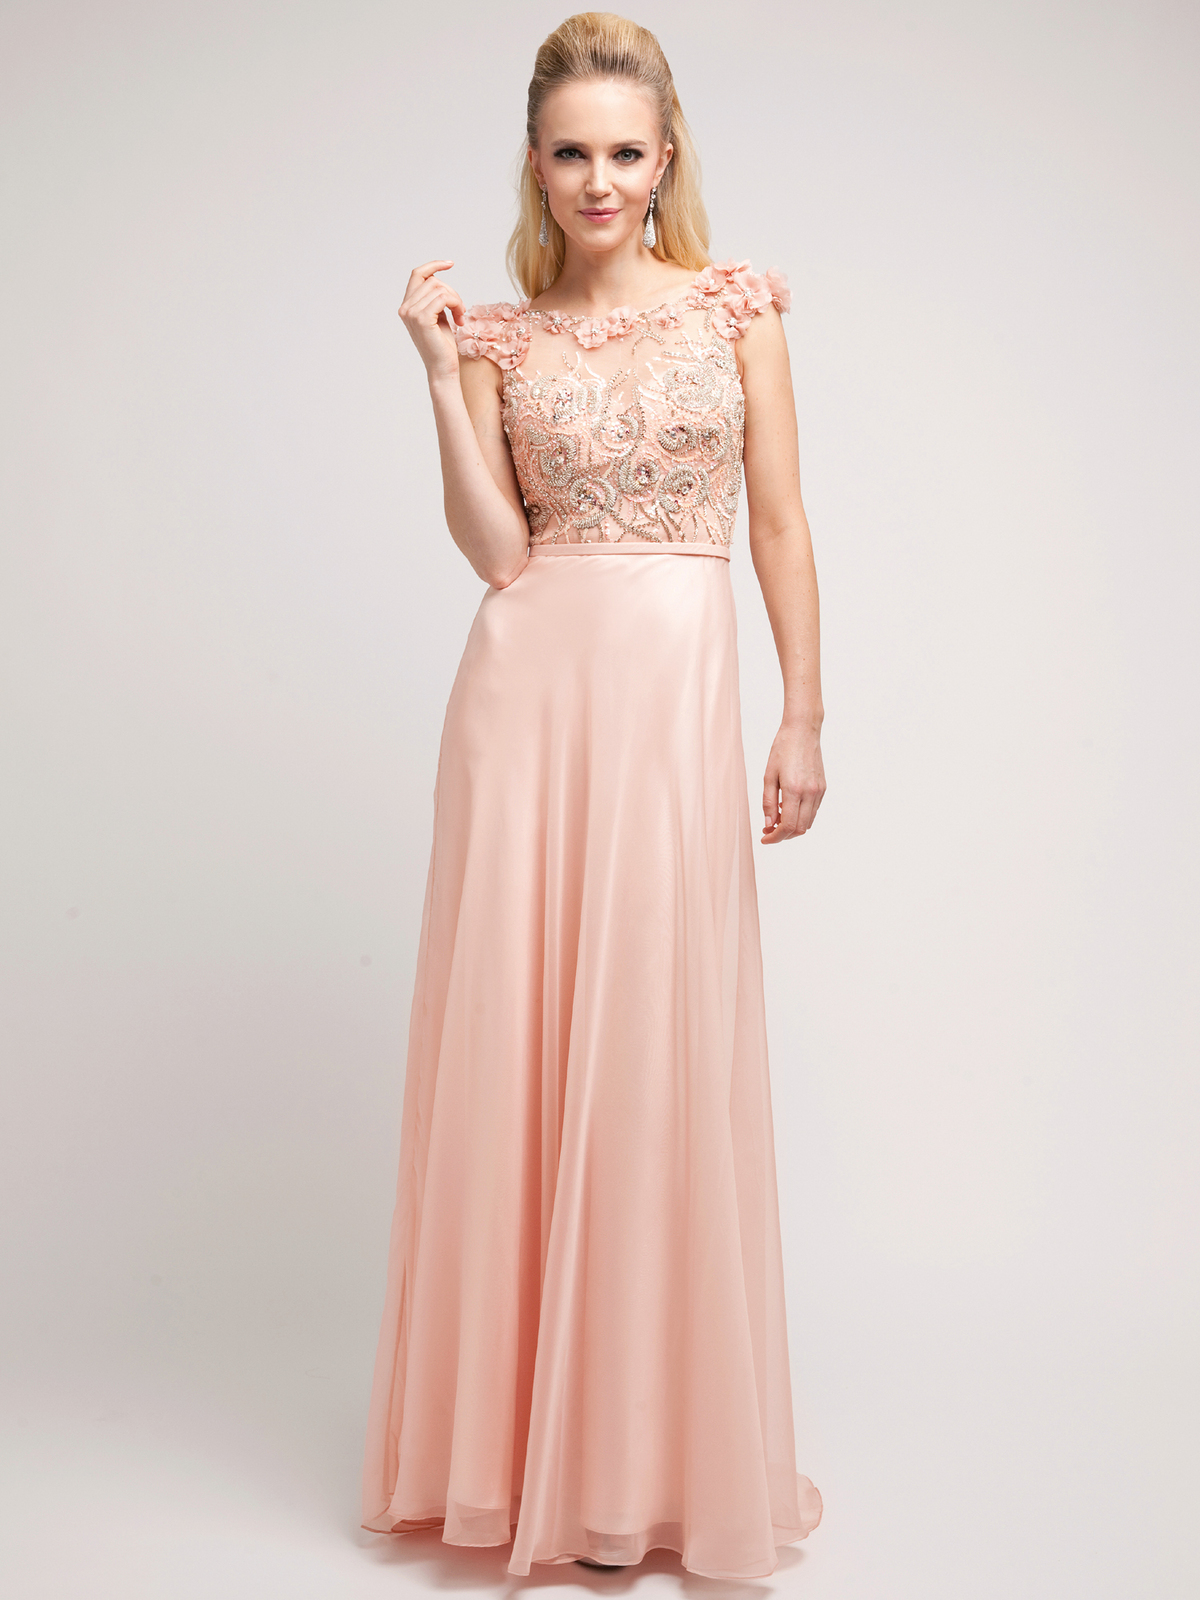 C8889 modern sleeveless mother of the bride dress blush front view